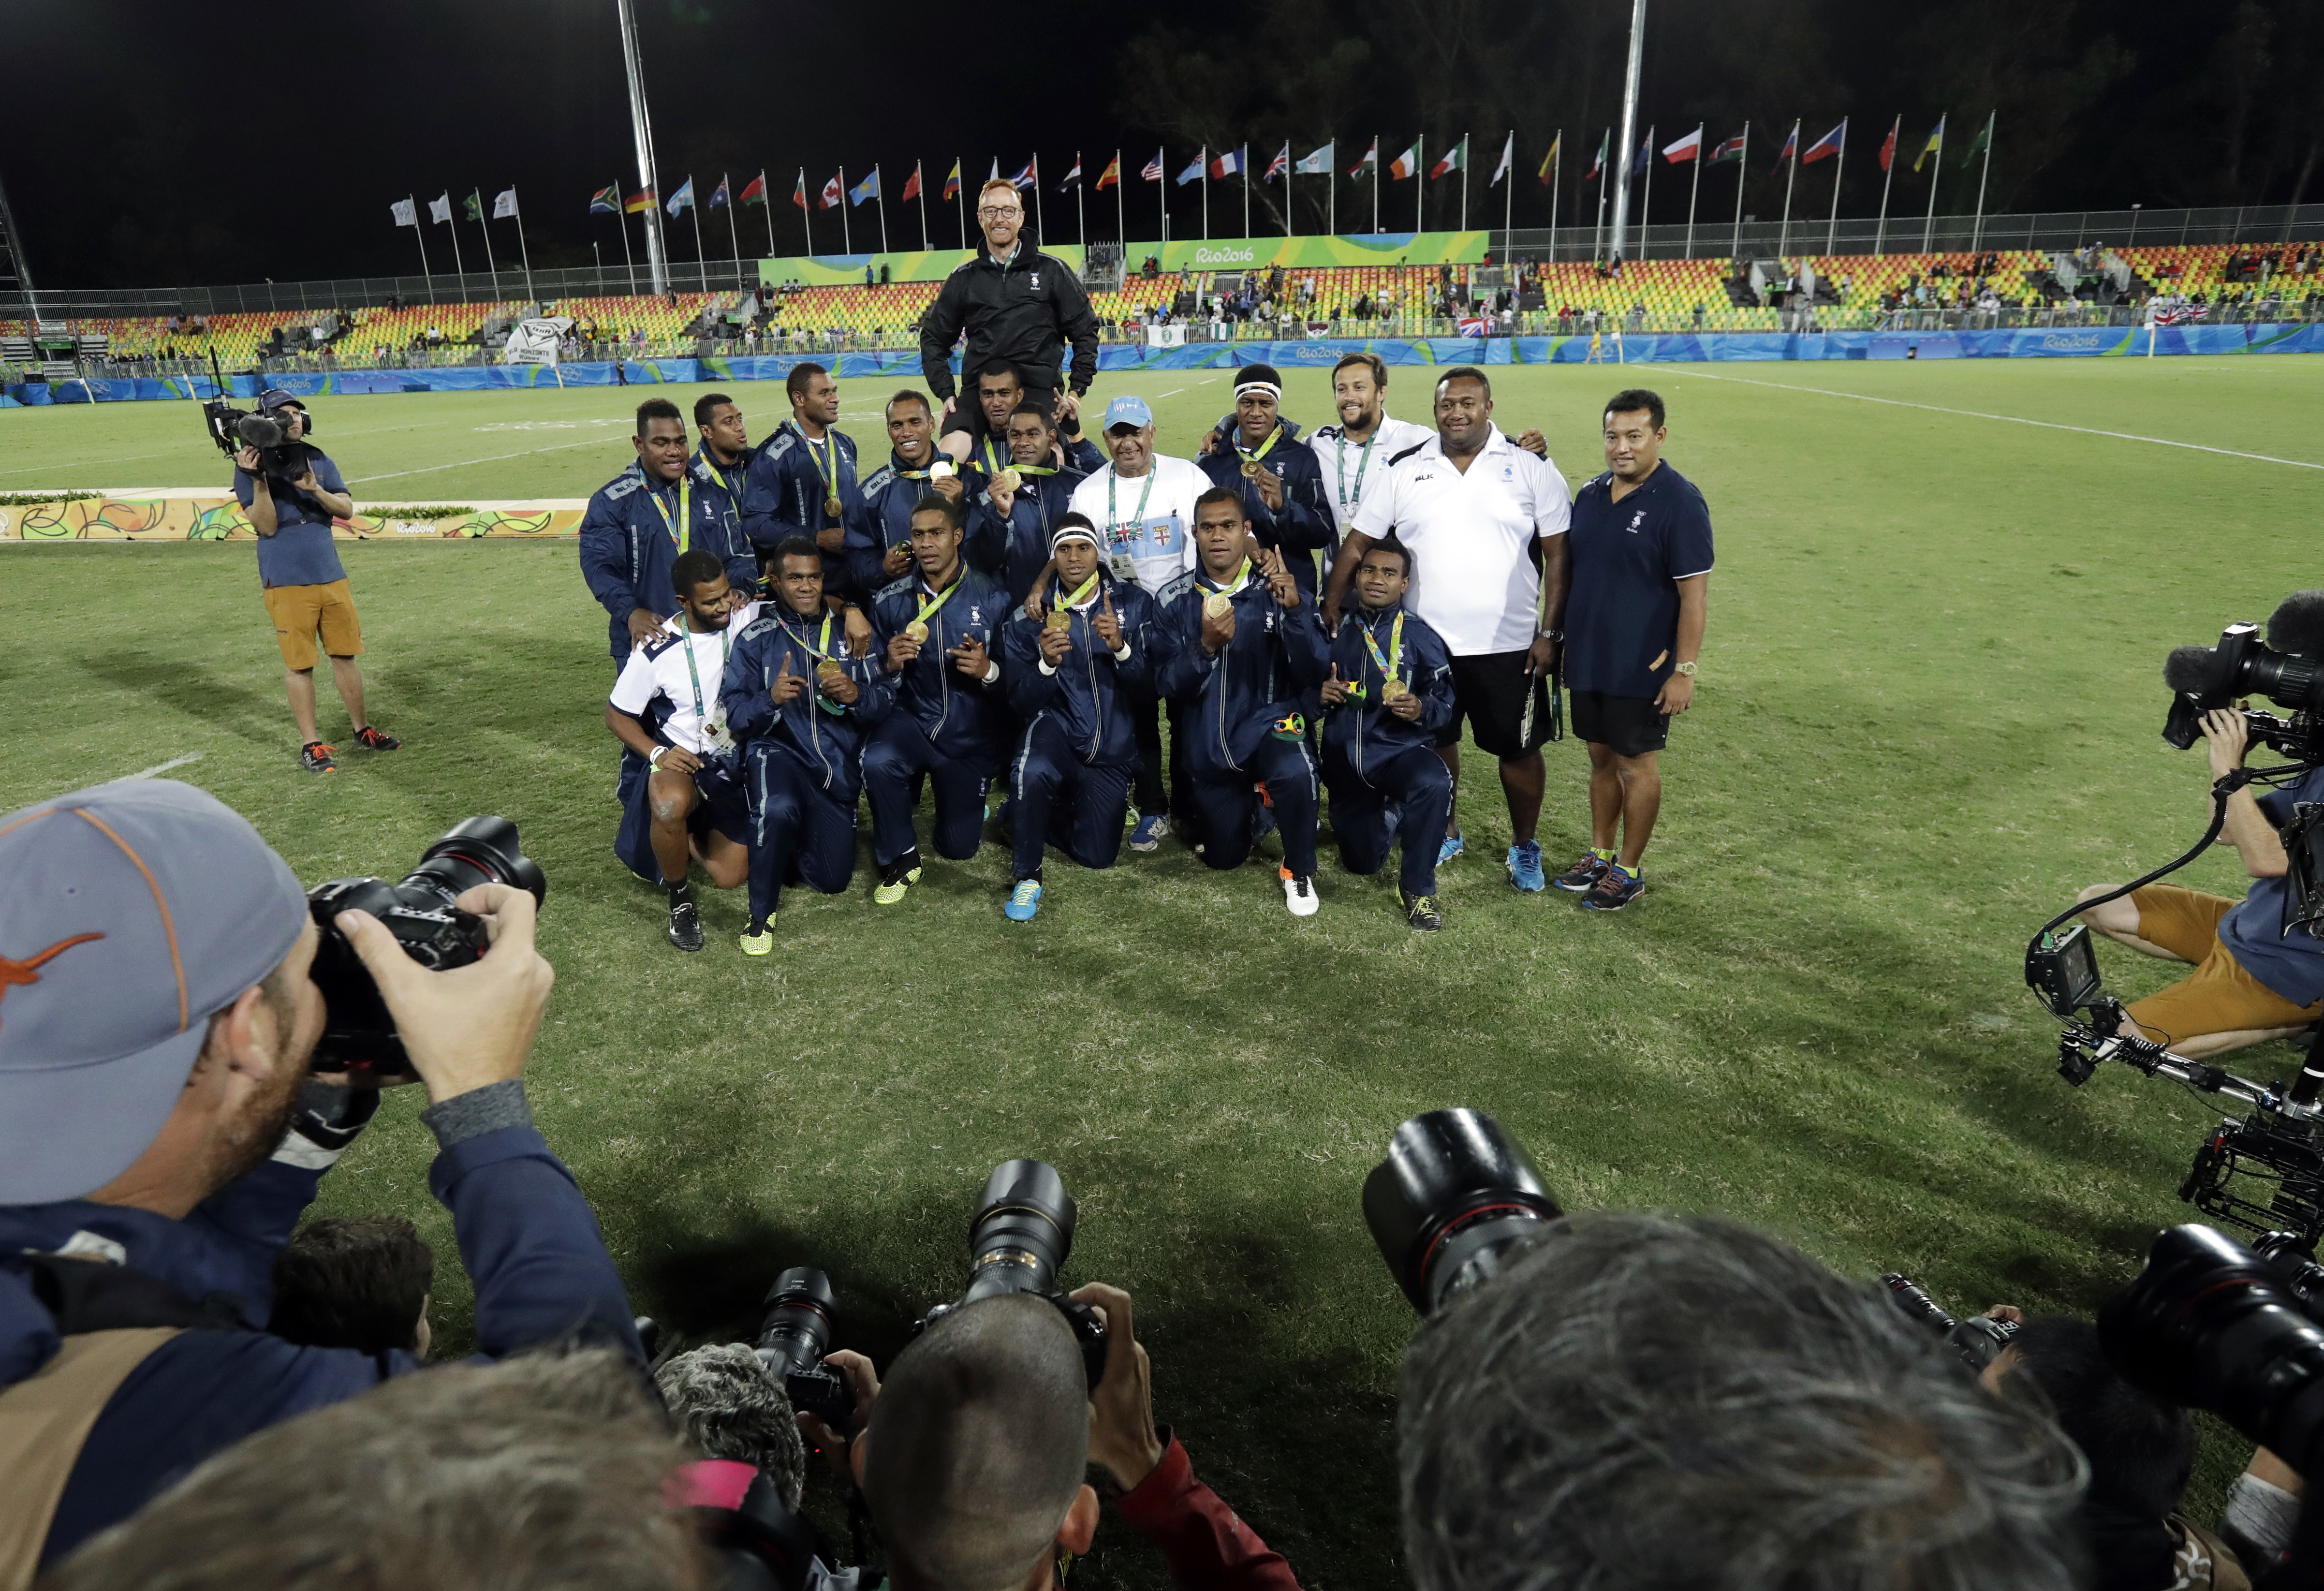 Fiji's rugby team poses after winning their country's first Olympic medal after taking gold by defeating Britain in mens rugby sevens at the 2016 Summer Olympics in Rio de Janeiro, Brazil, Thursday, Aug. 11, 2016. (AP Photo/Robert F. Bukaty)